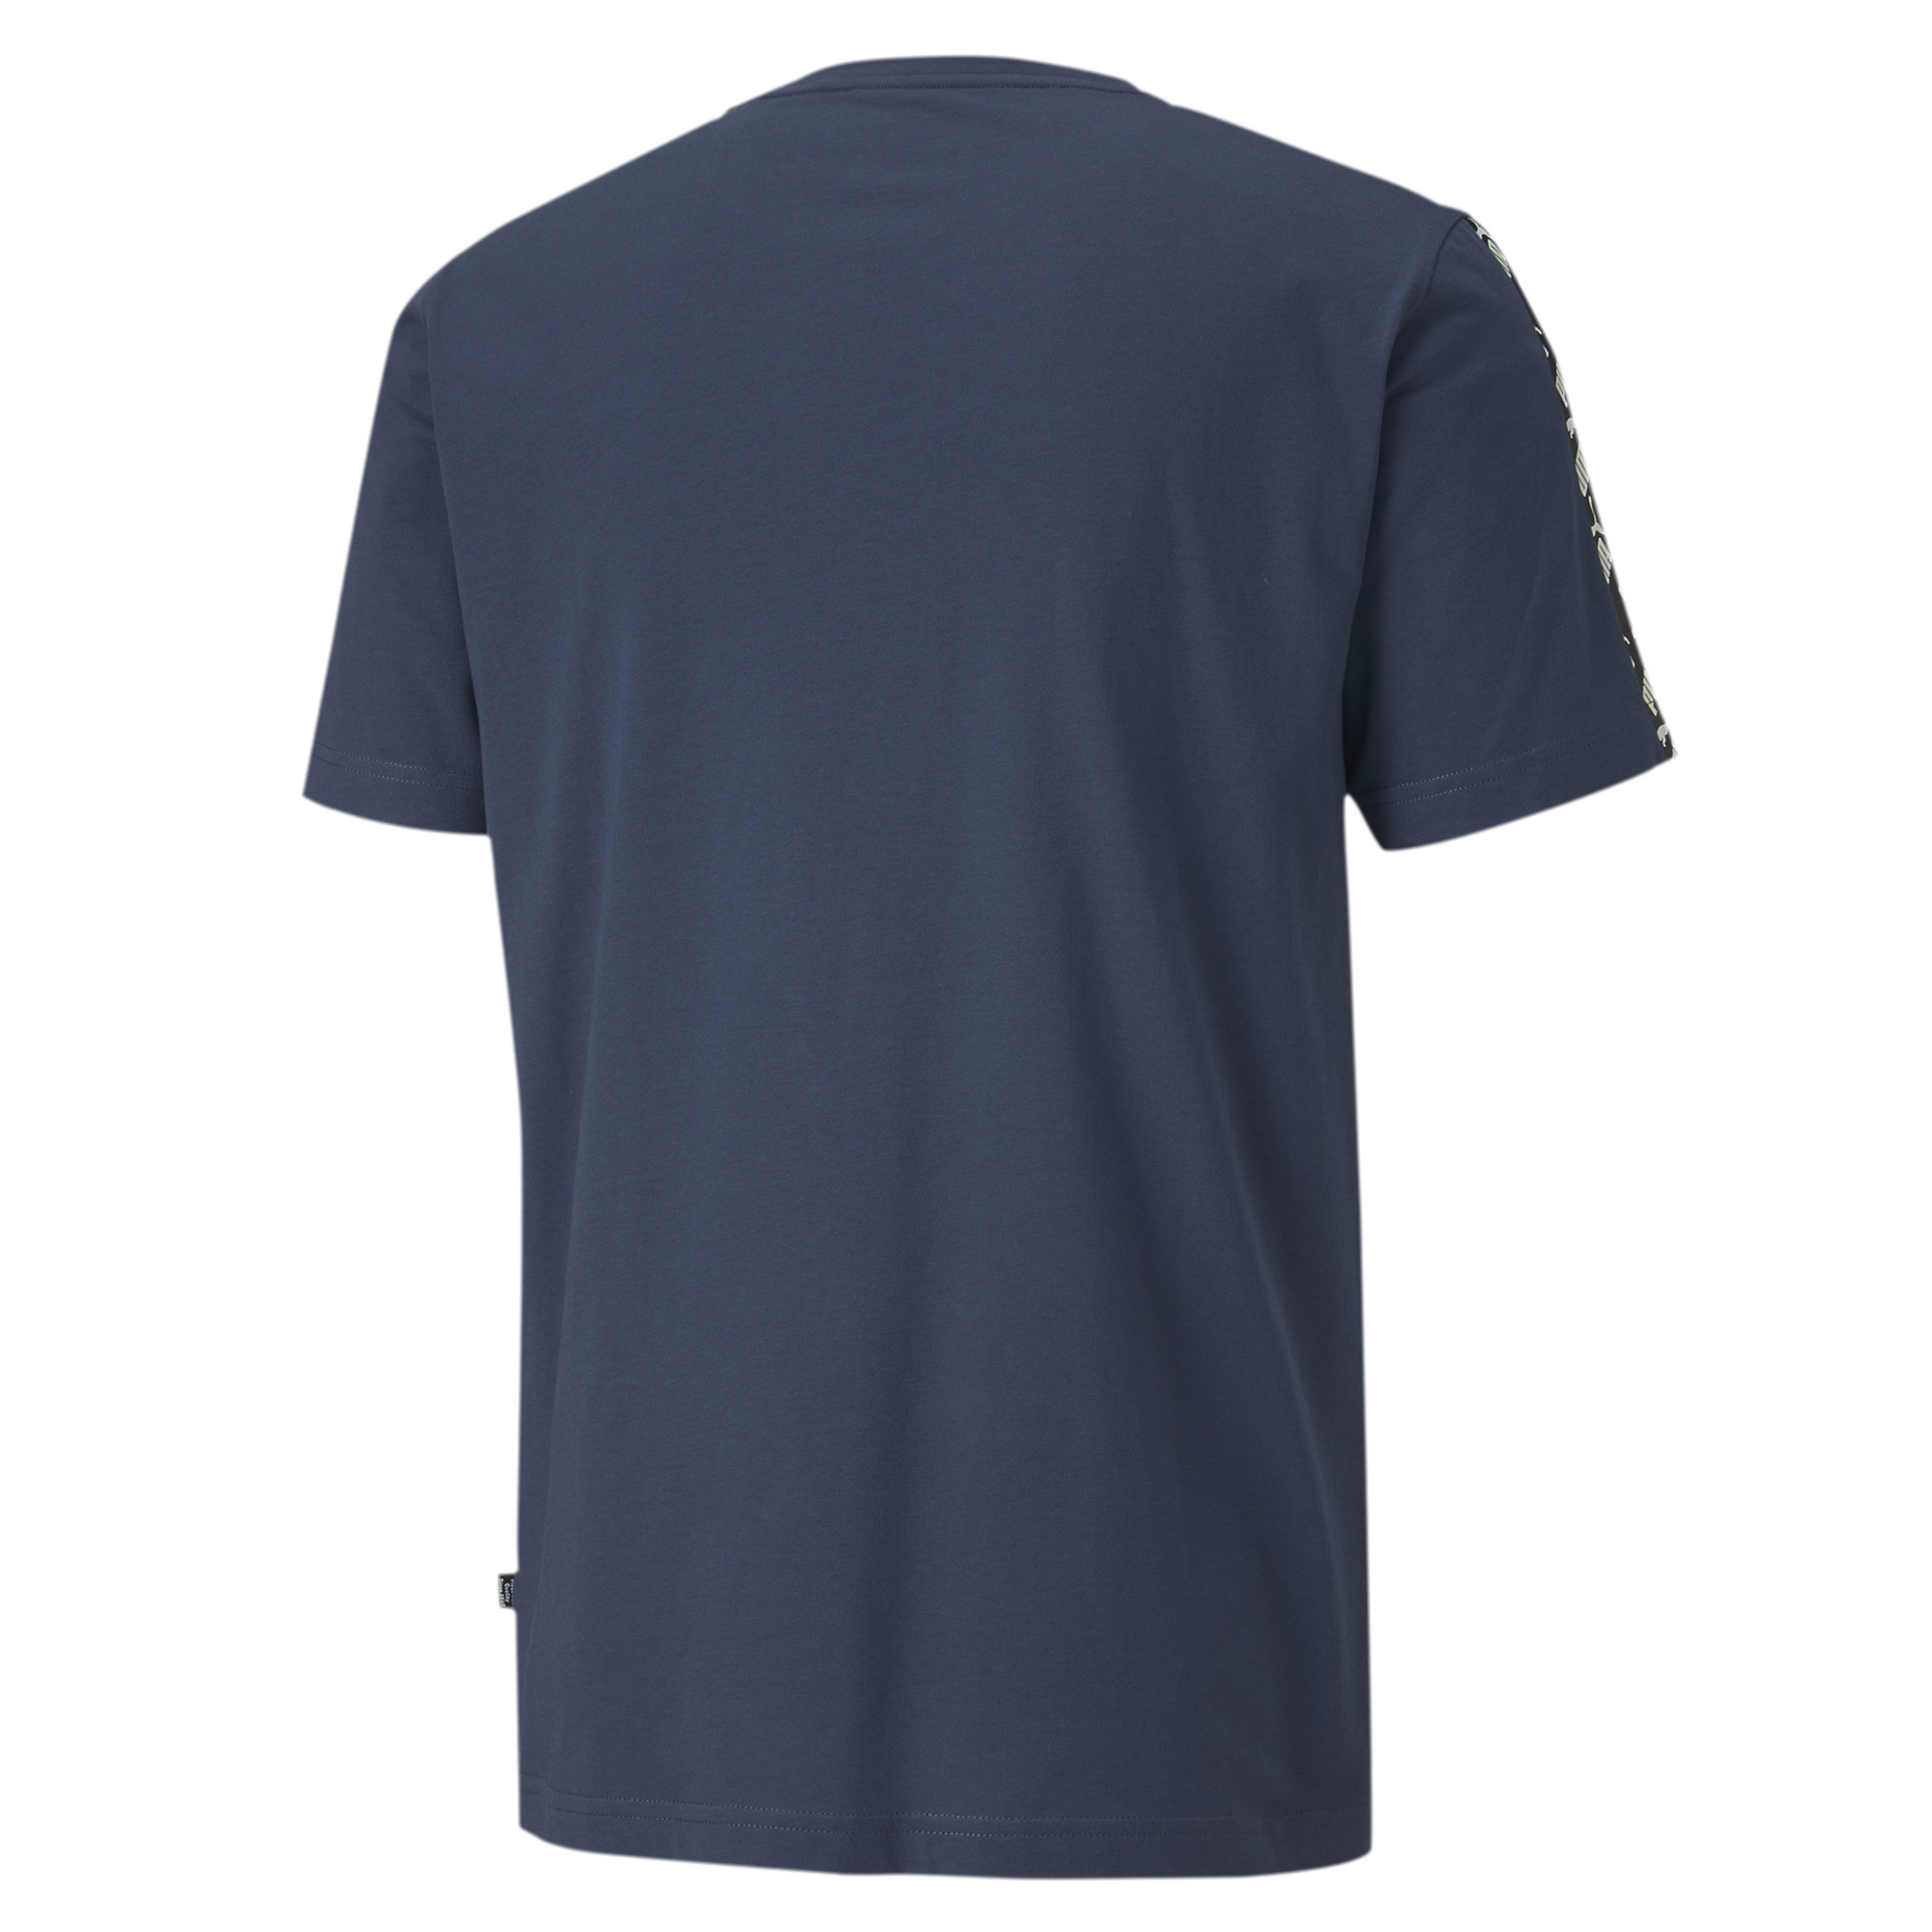 PUMA-Amplified-Men-039-s-Tee-Men-Tee-Basics thumbnail 17